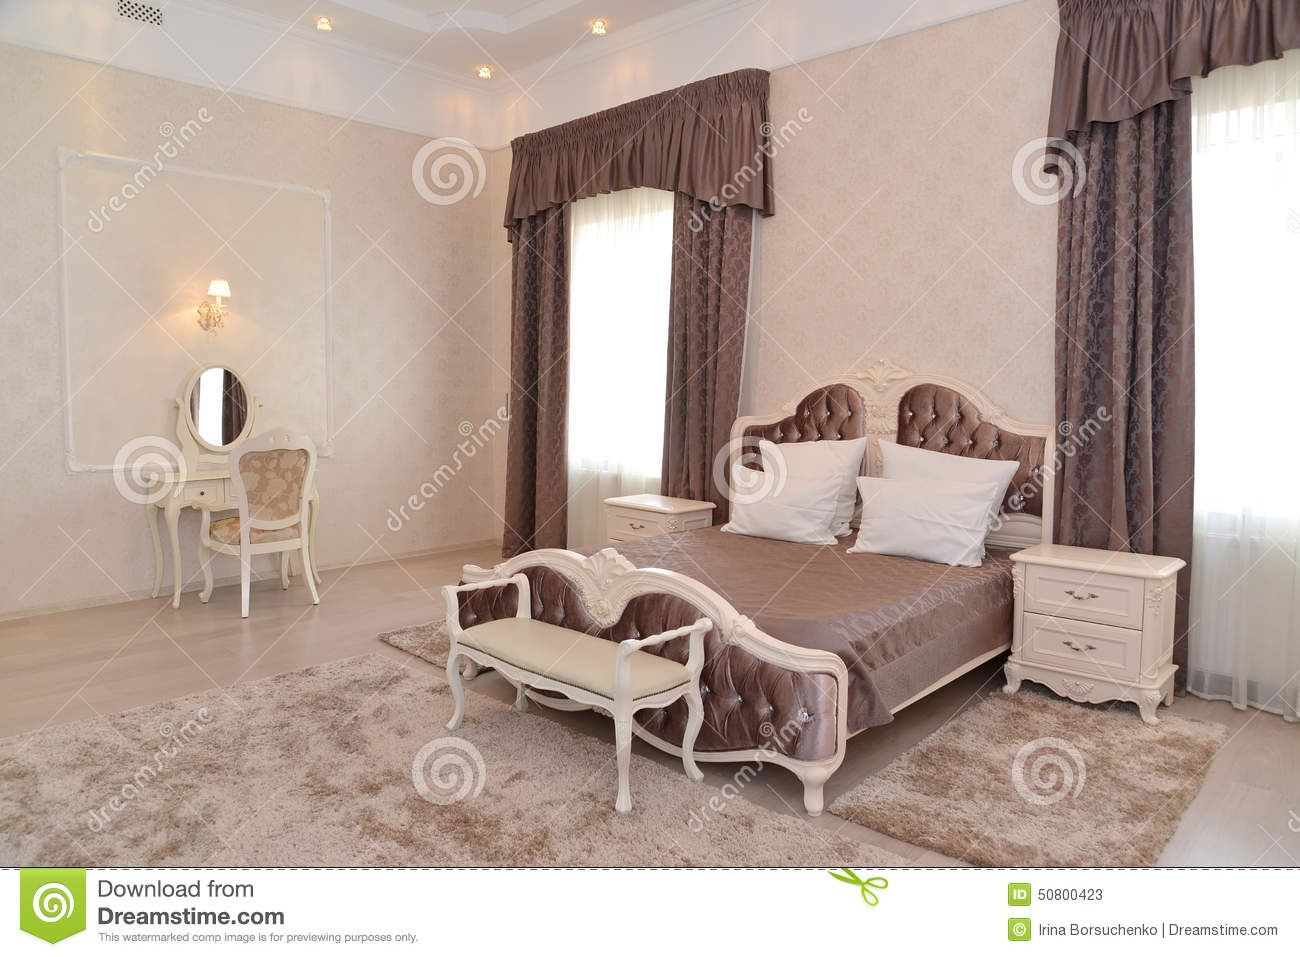 Stunning model rideau chambre a coucher gallery awesome for Modele chambre a coucher